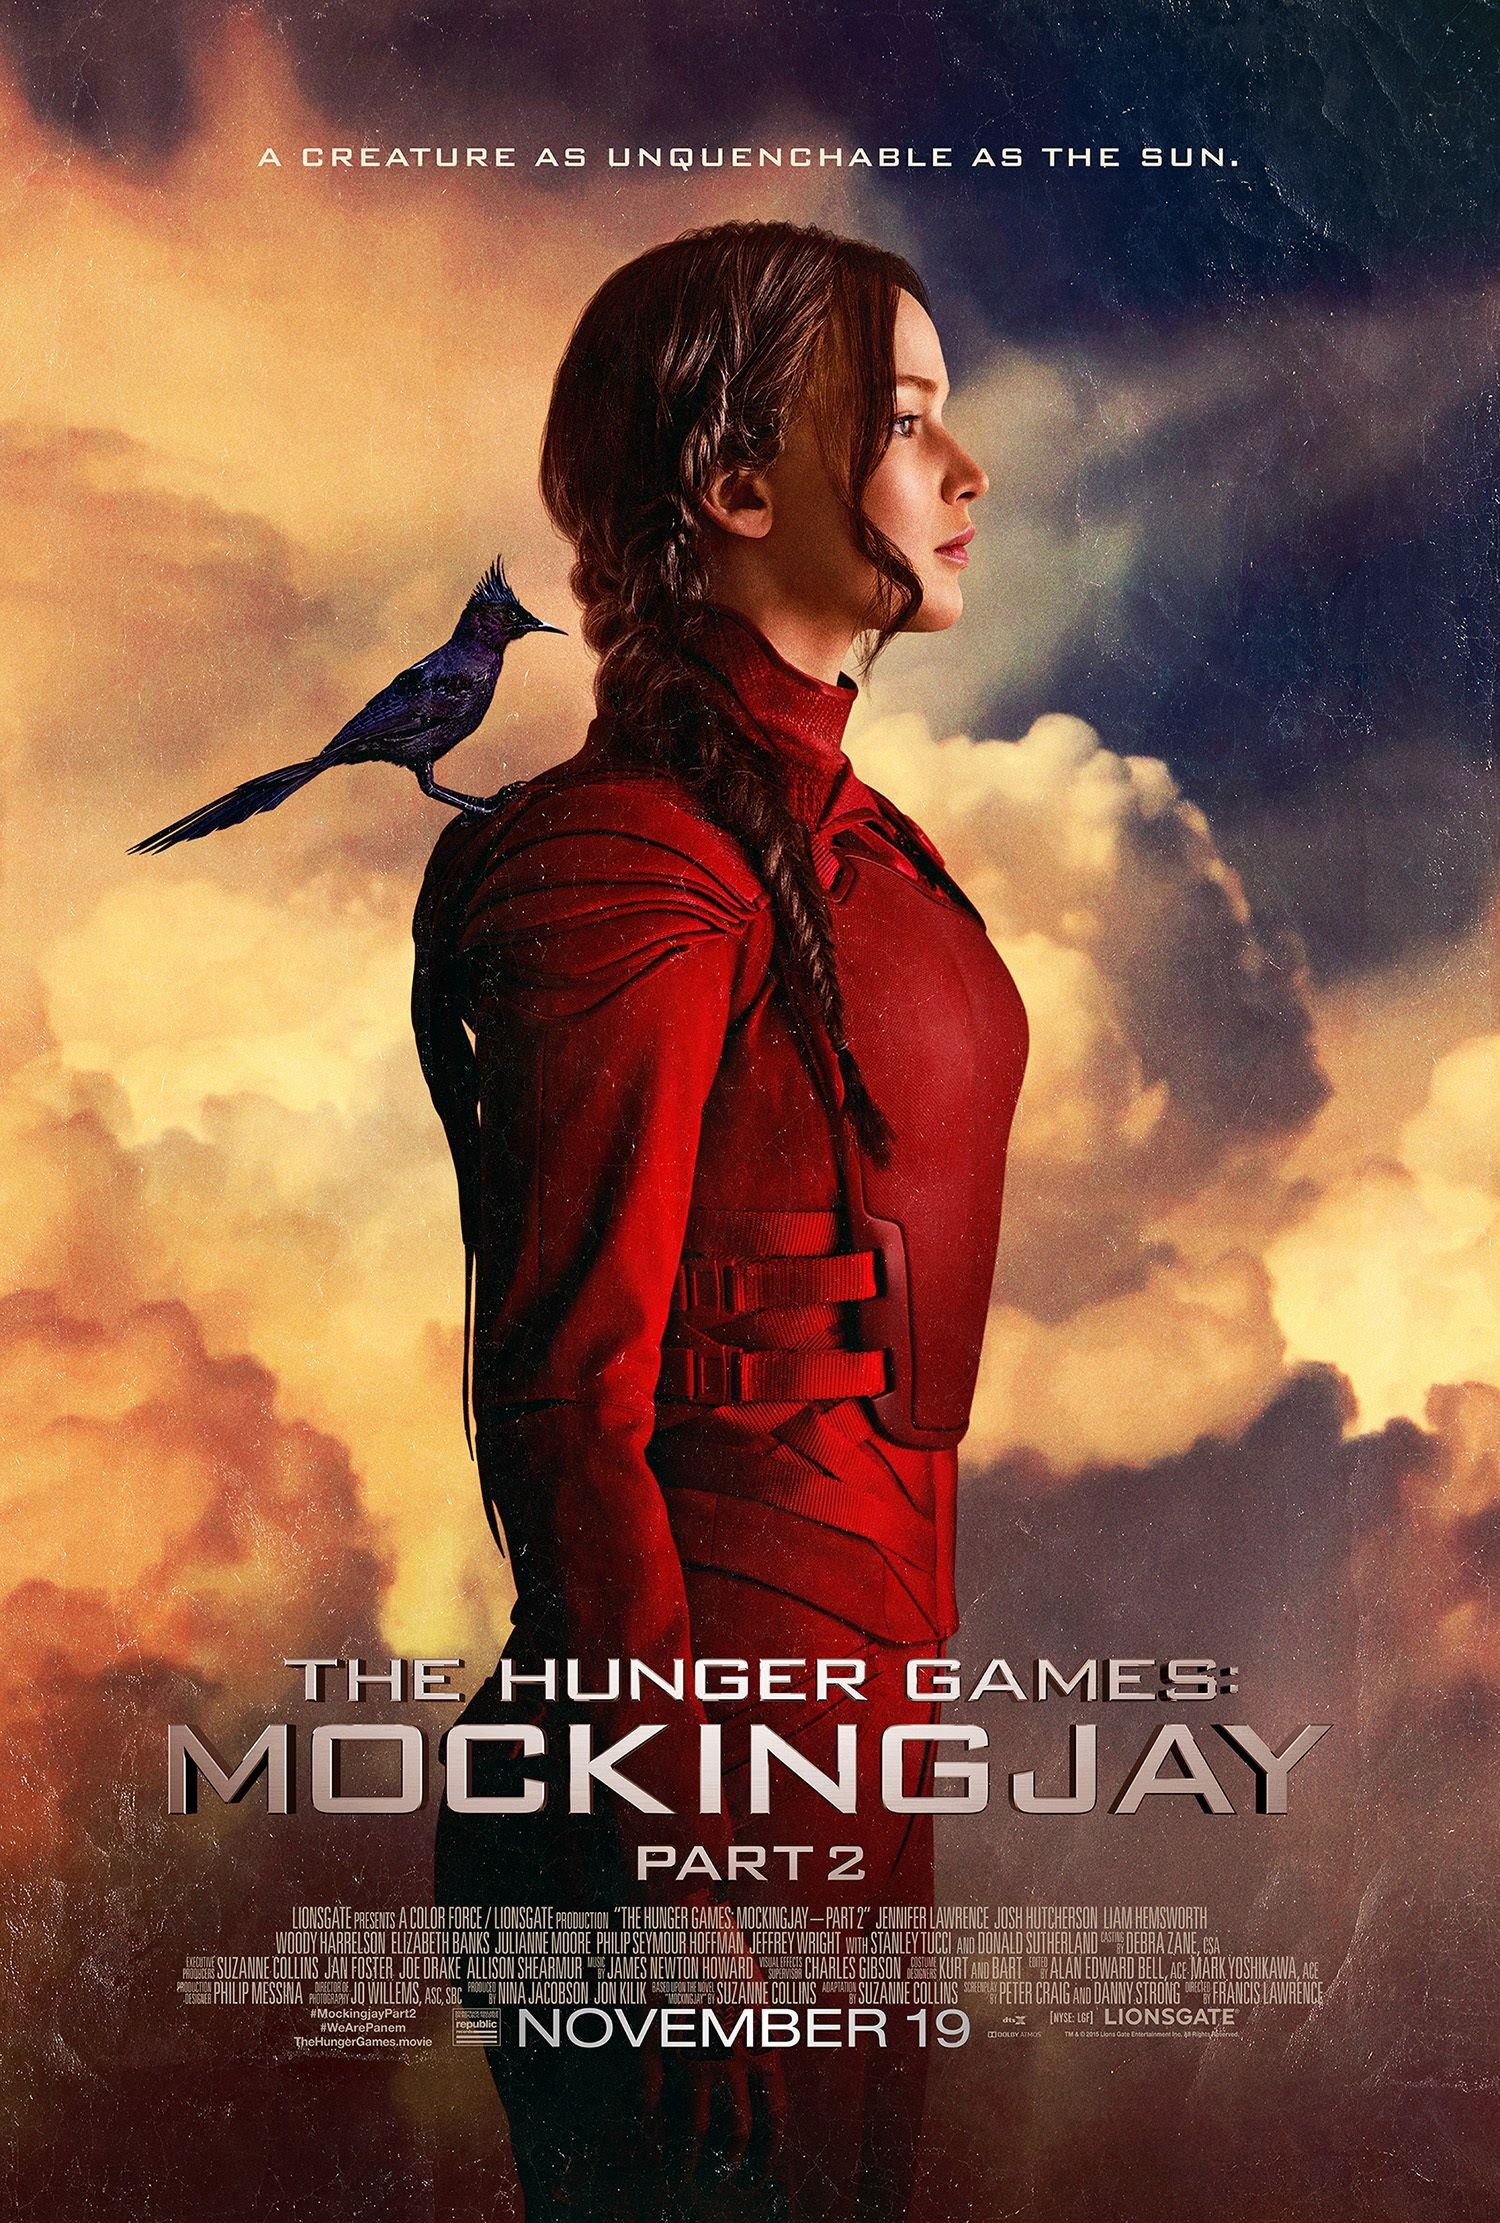 The Hunger Games: Mockingjay - Part 2 | Movie Posters ...